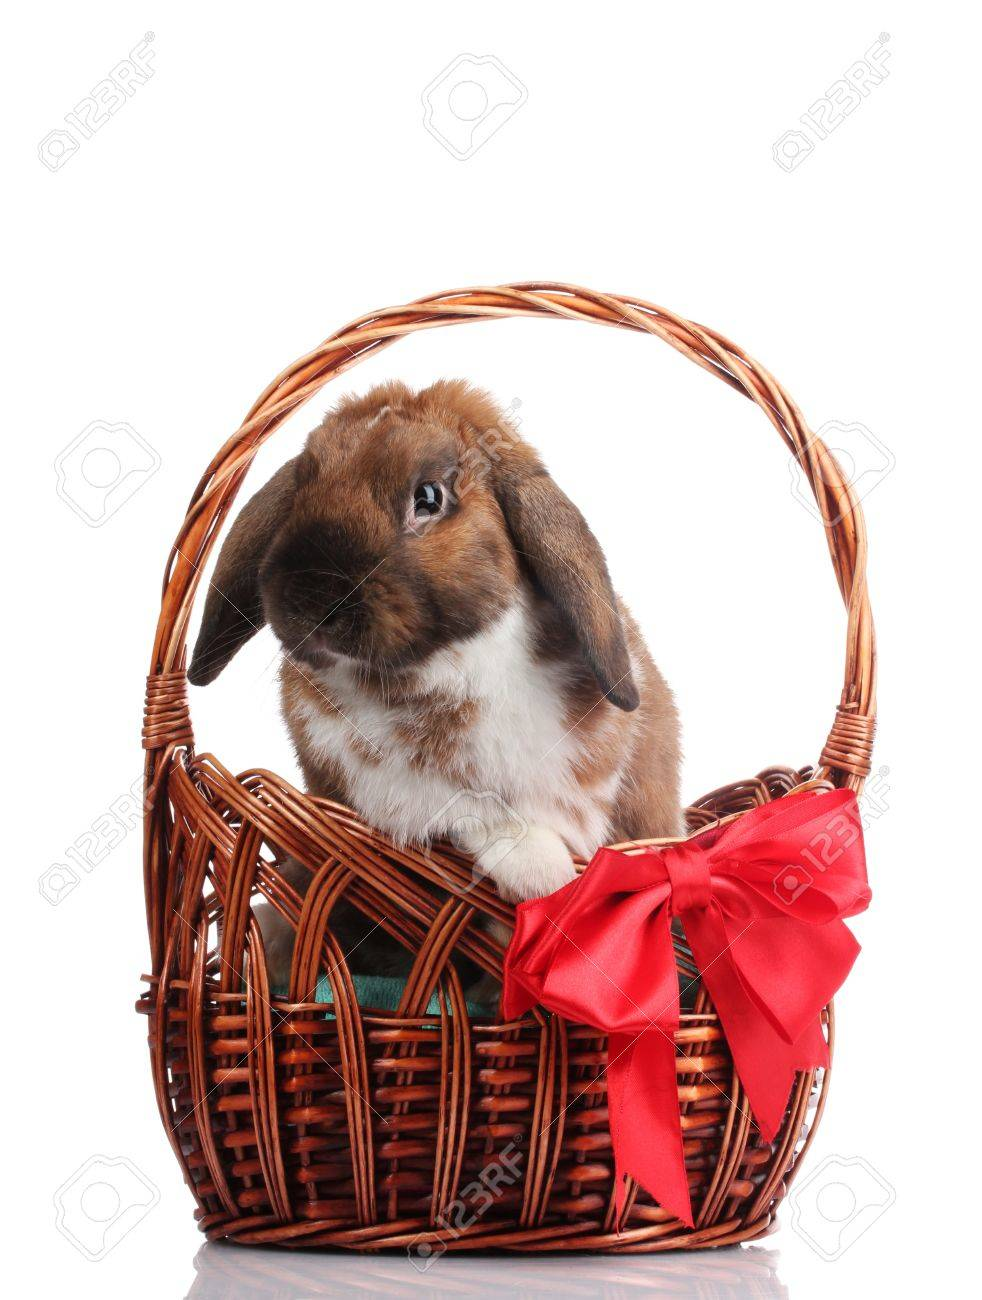 Lop-eared rabbit in a basket with red bow isolated on white Stock Photo - 11903460